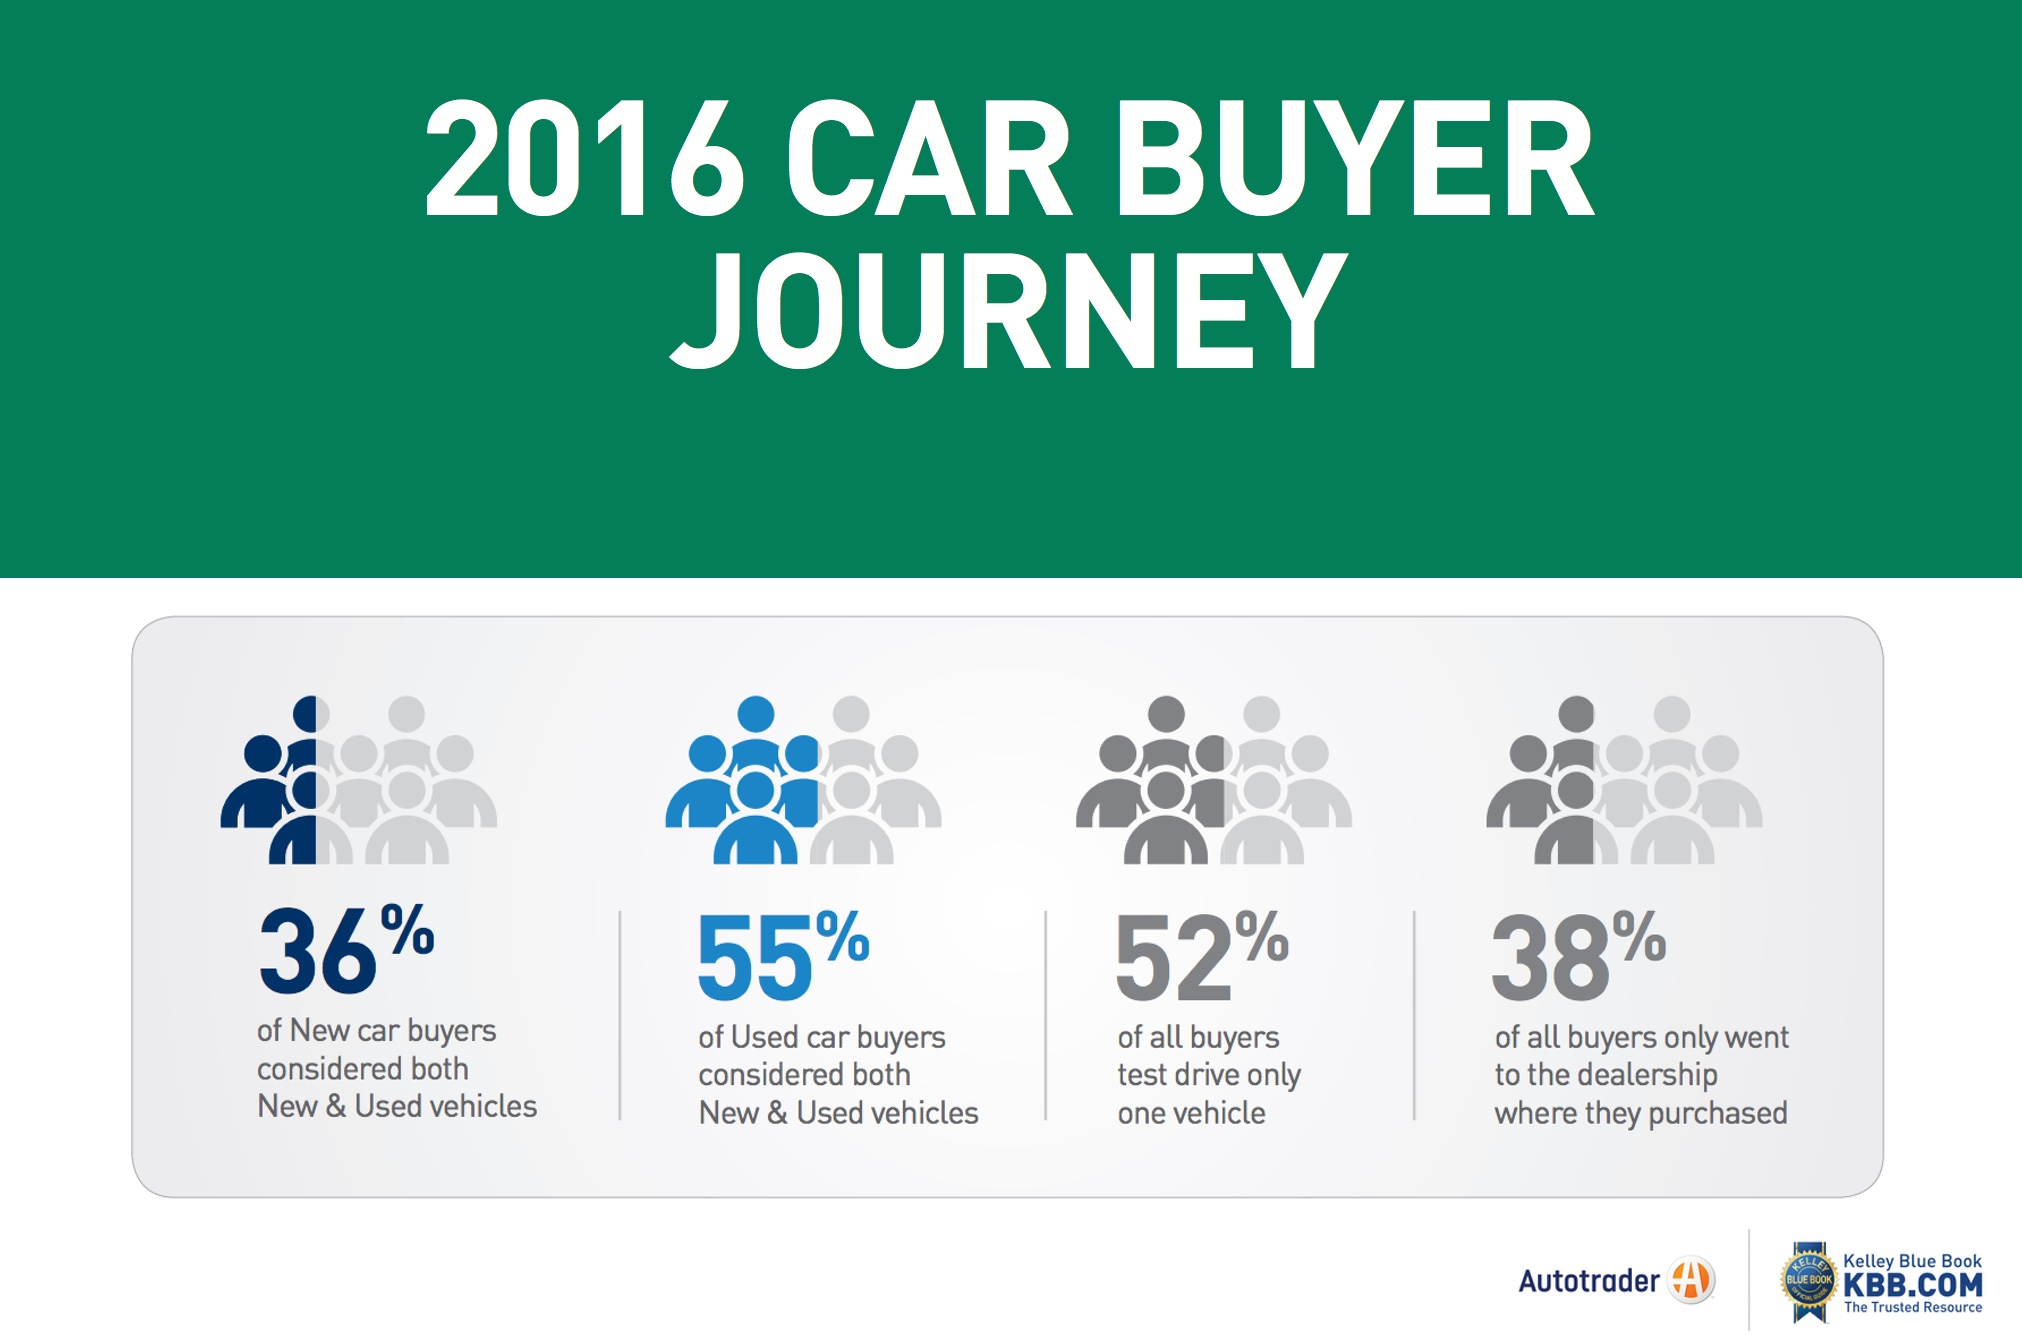 what does the 2016 car er journey say